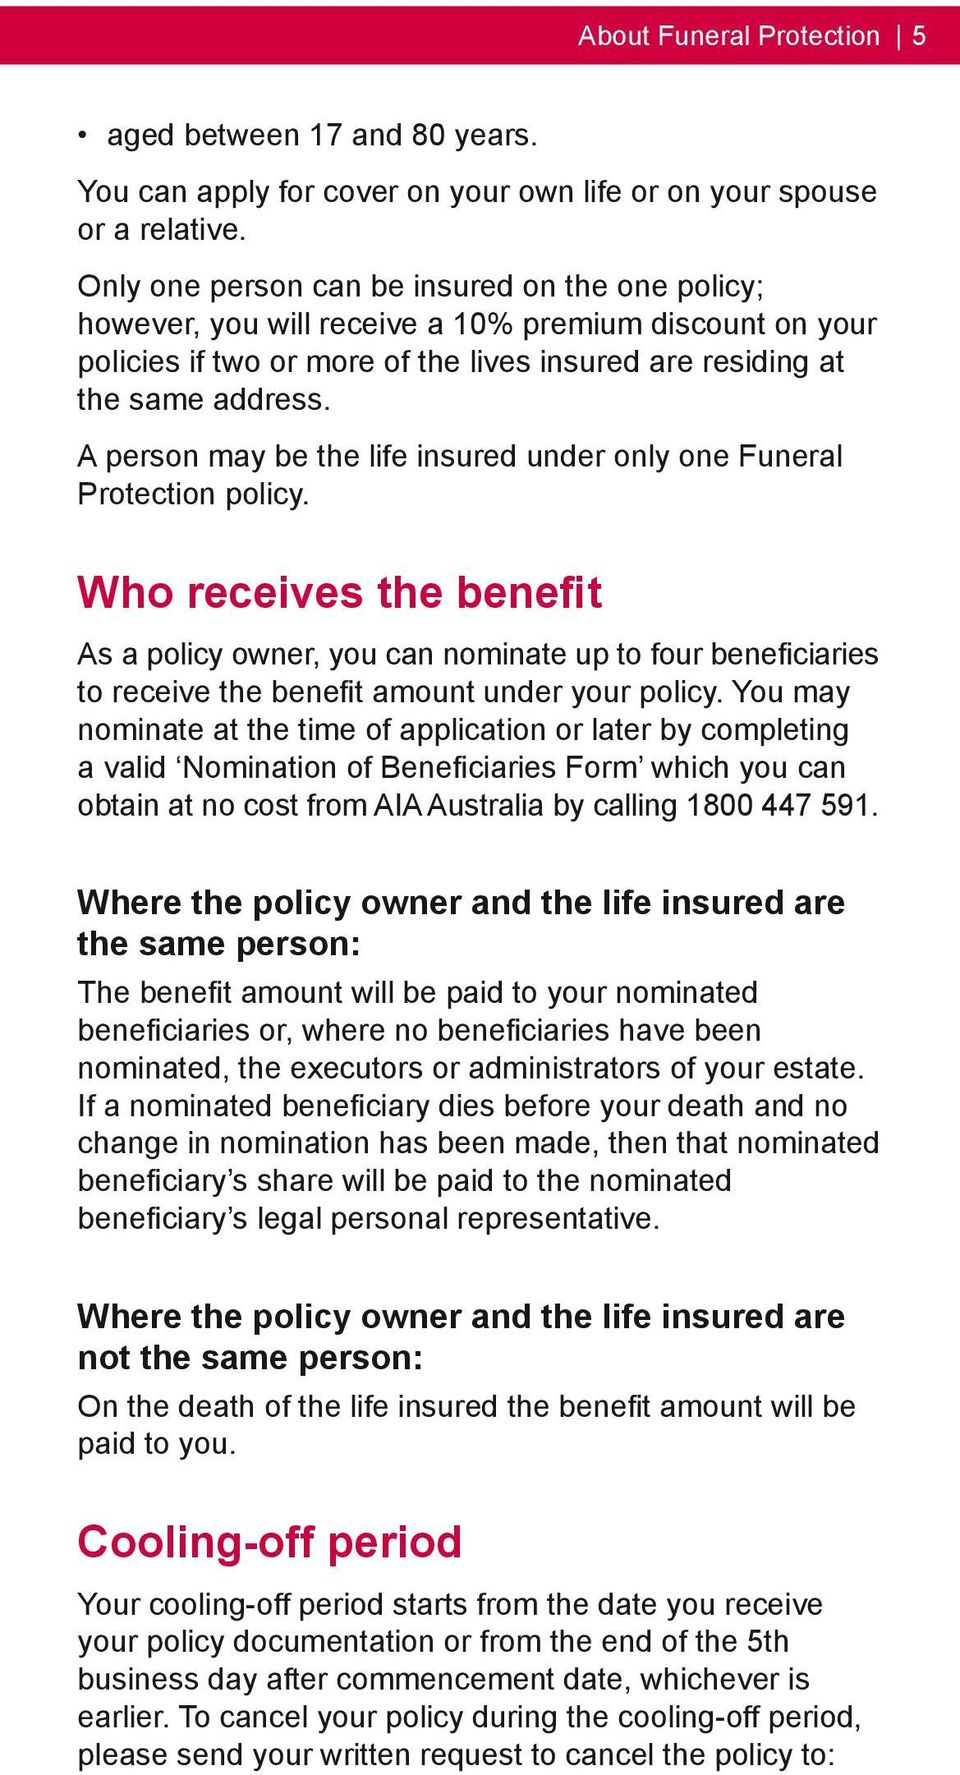 A person may be the life insured under only one Funeral Protection policy.